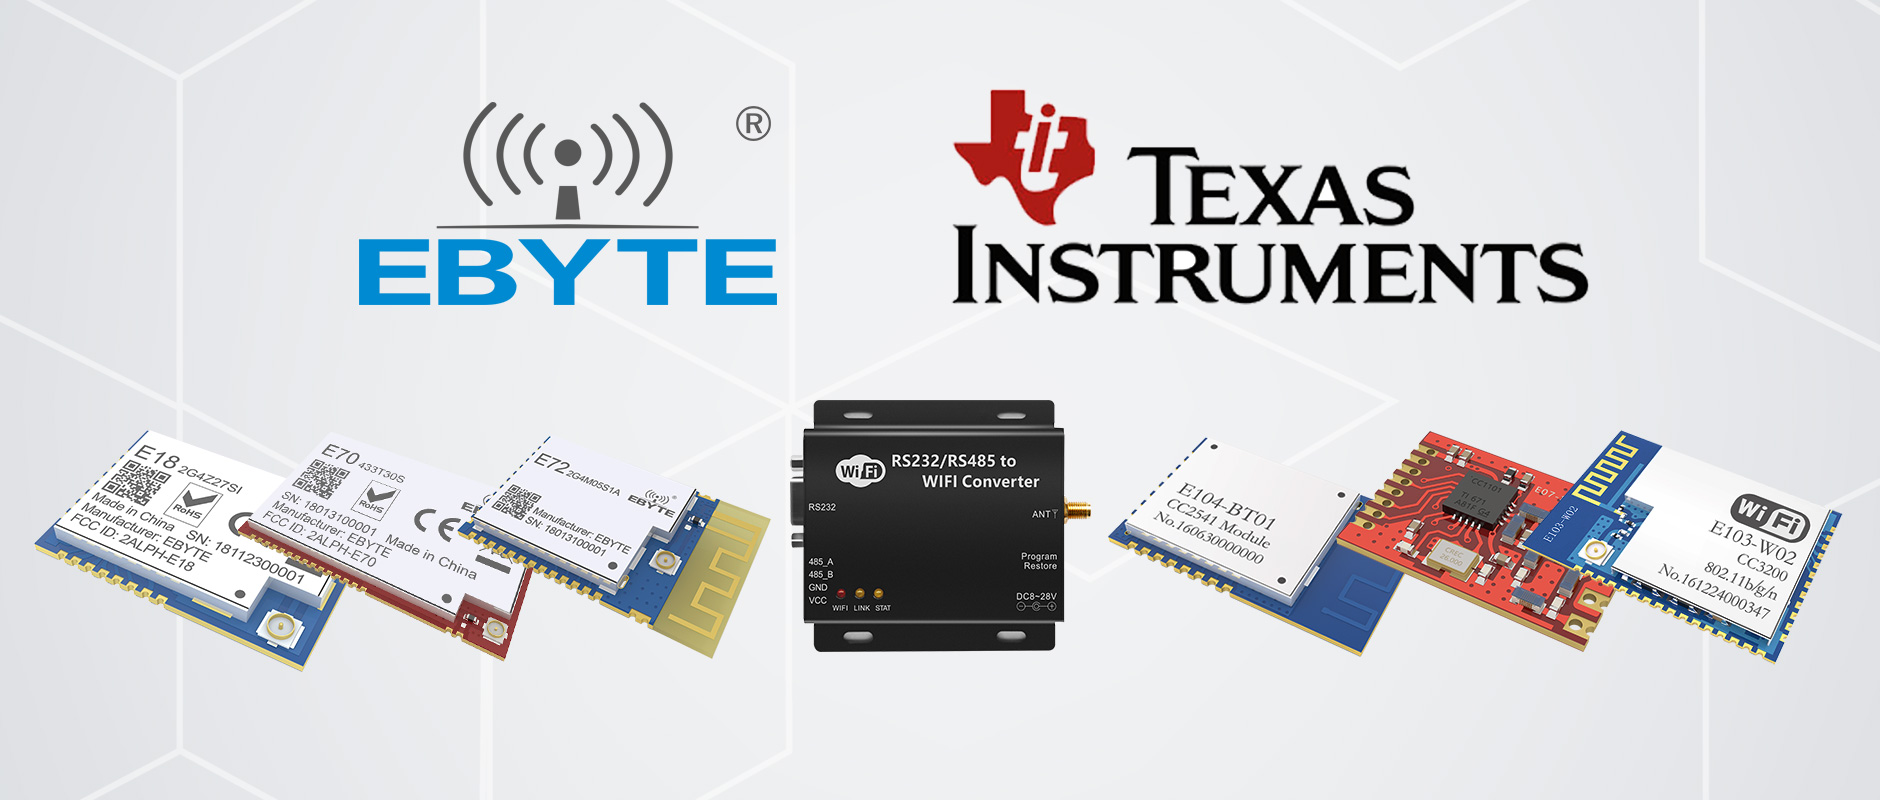 Ebyte became the third-party design partner with Texas Instruments (TI)